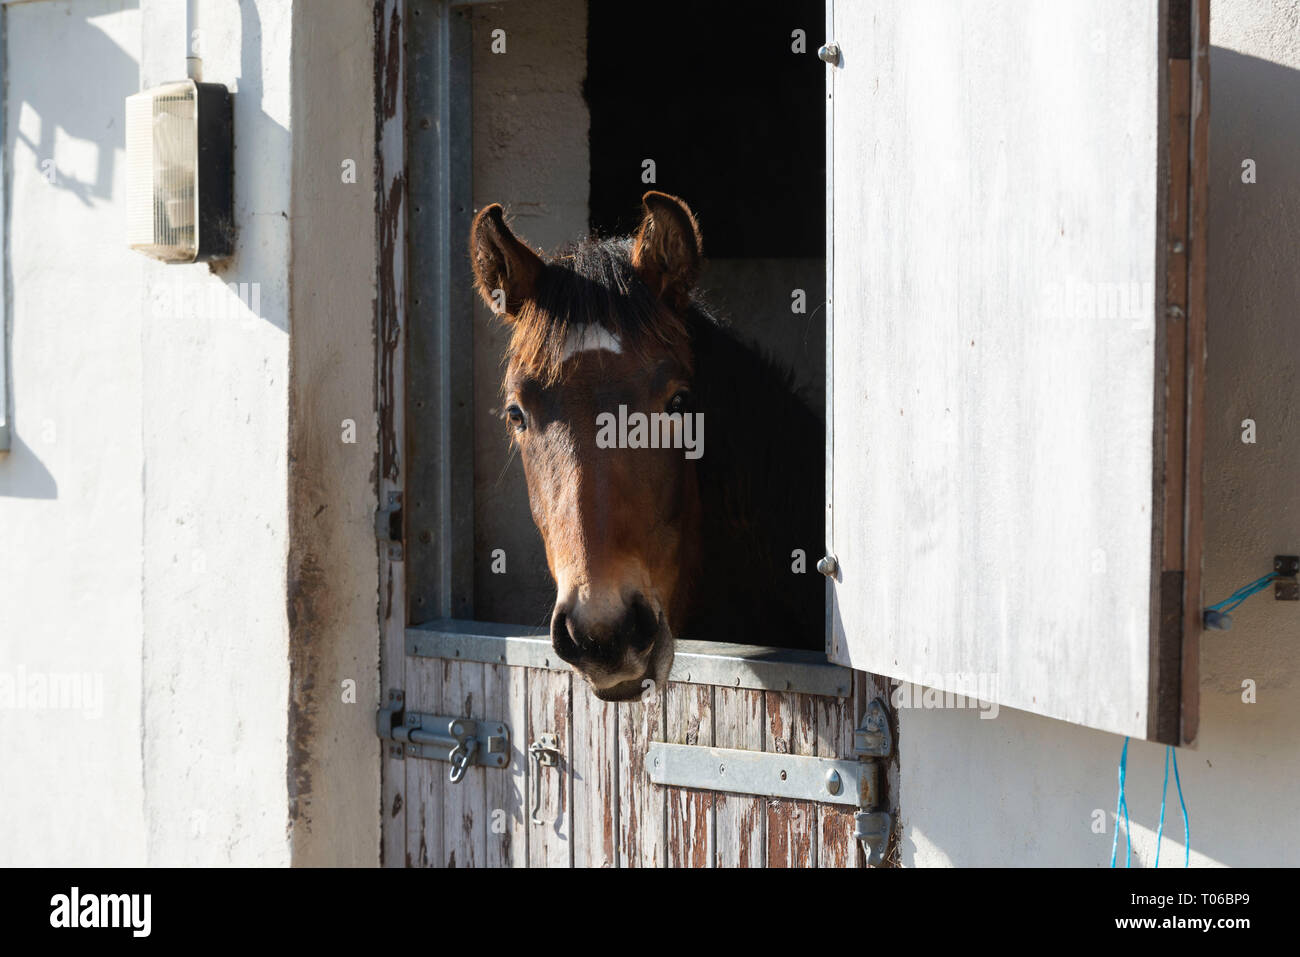 A Lusitano Foal Looks Out Over the Half Door of His Stable - Stock Image